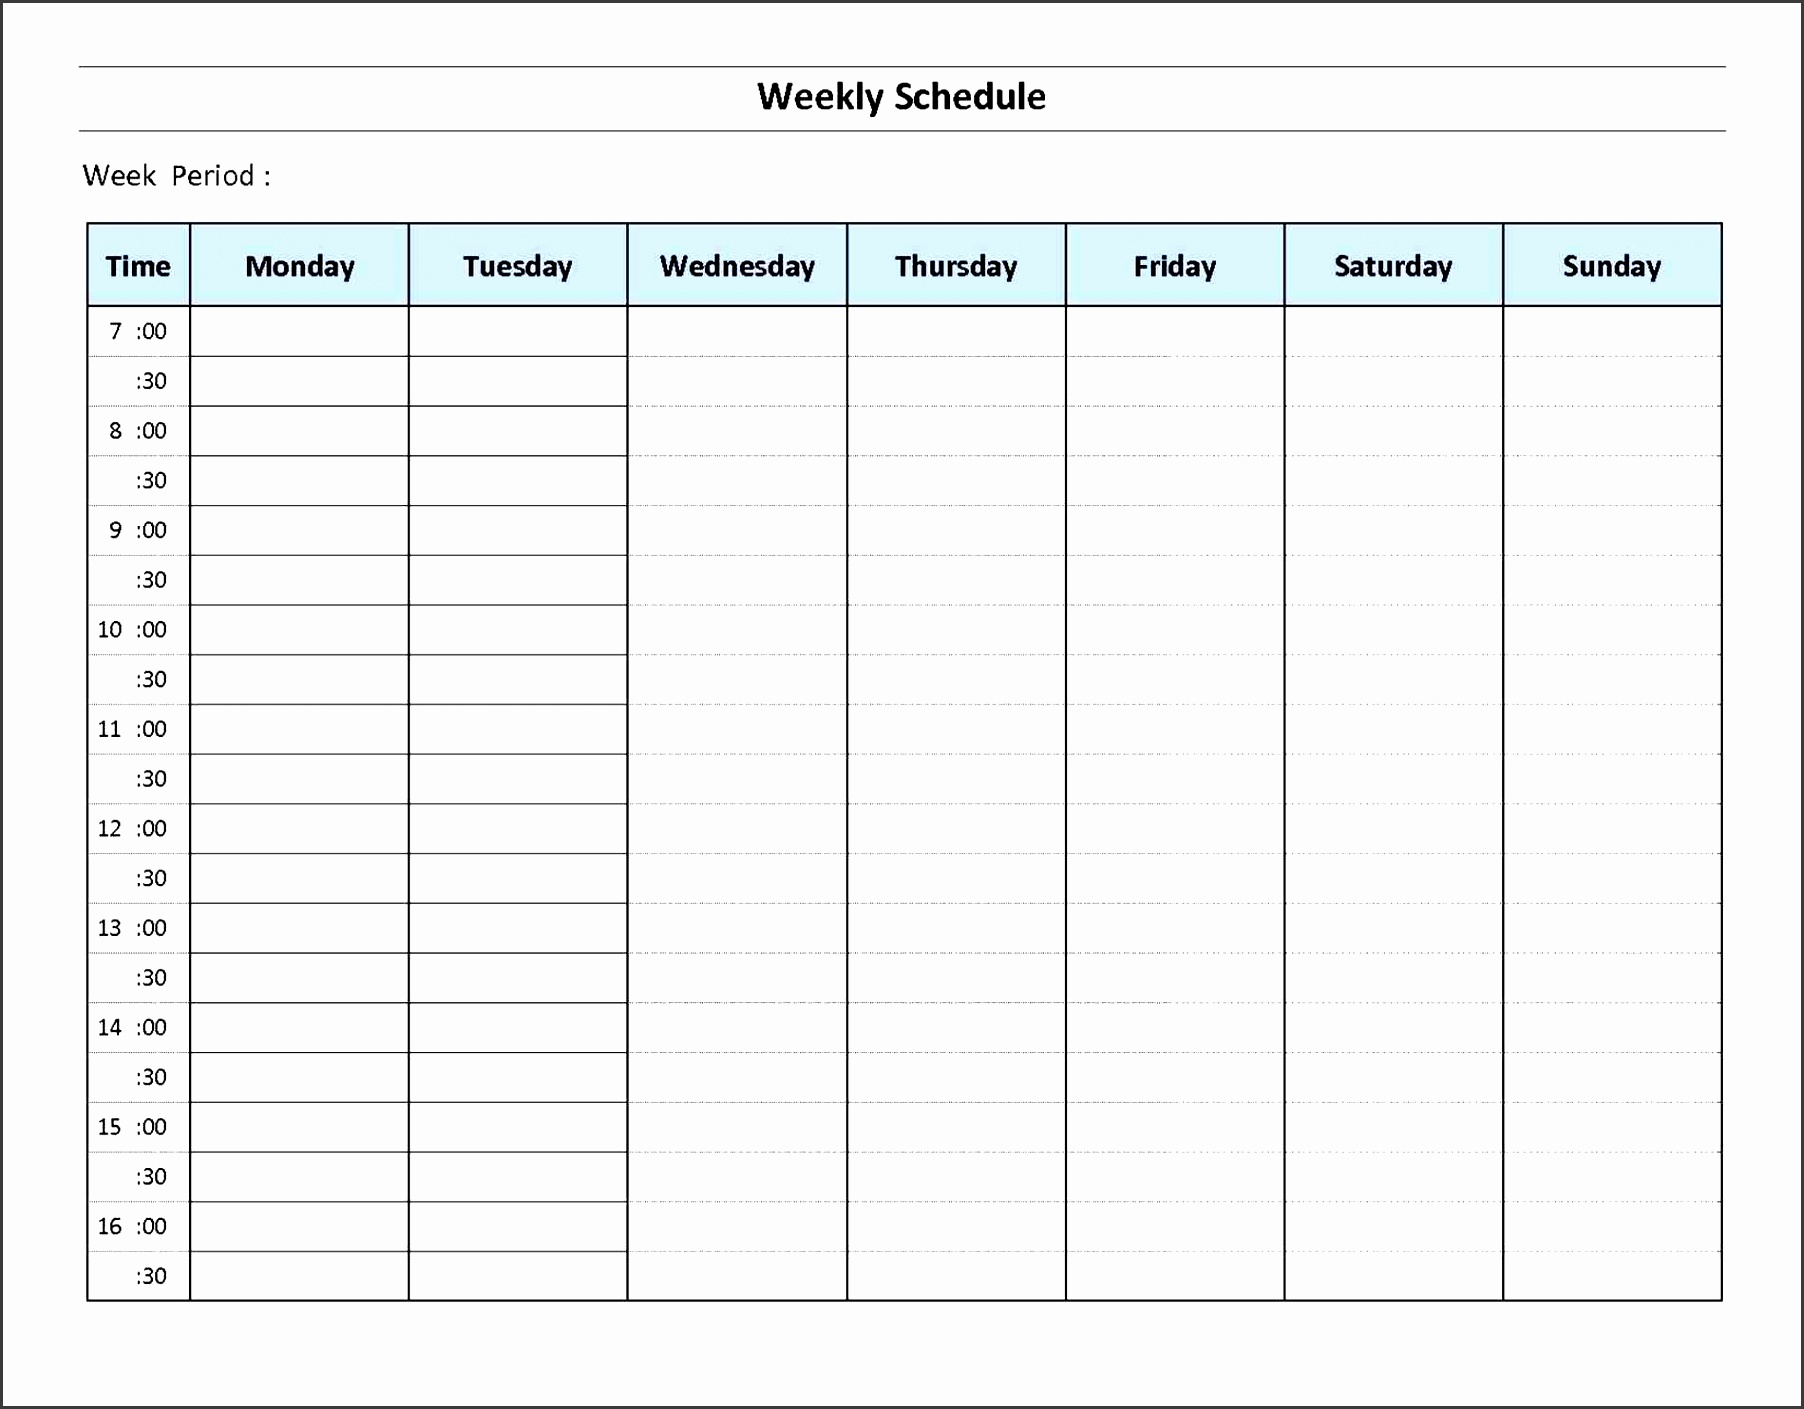 daily work schedule template - Kubre.euforic.co